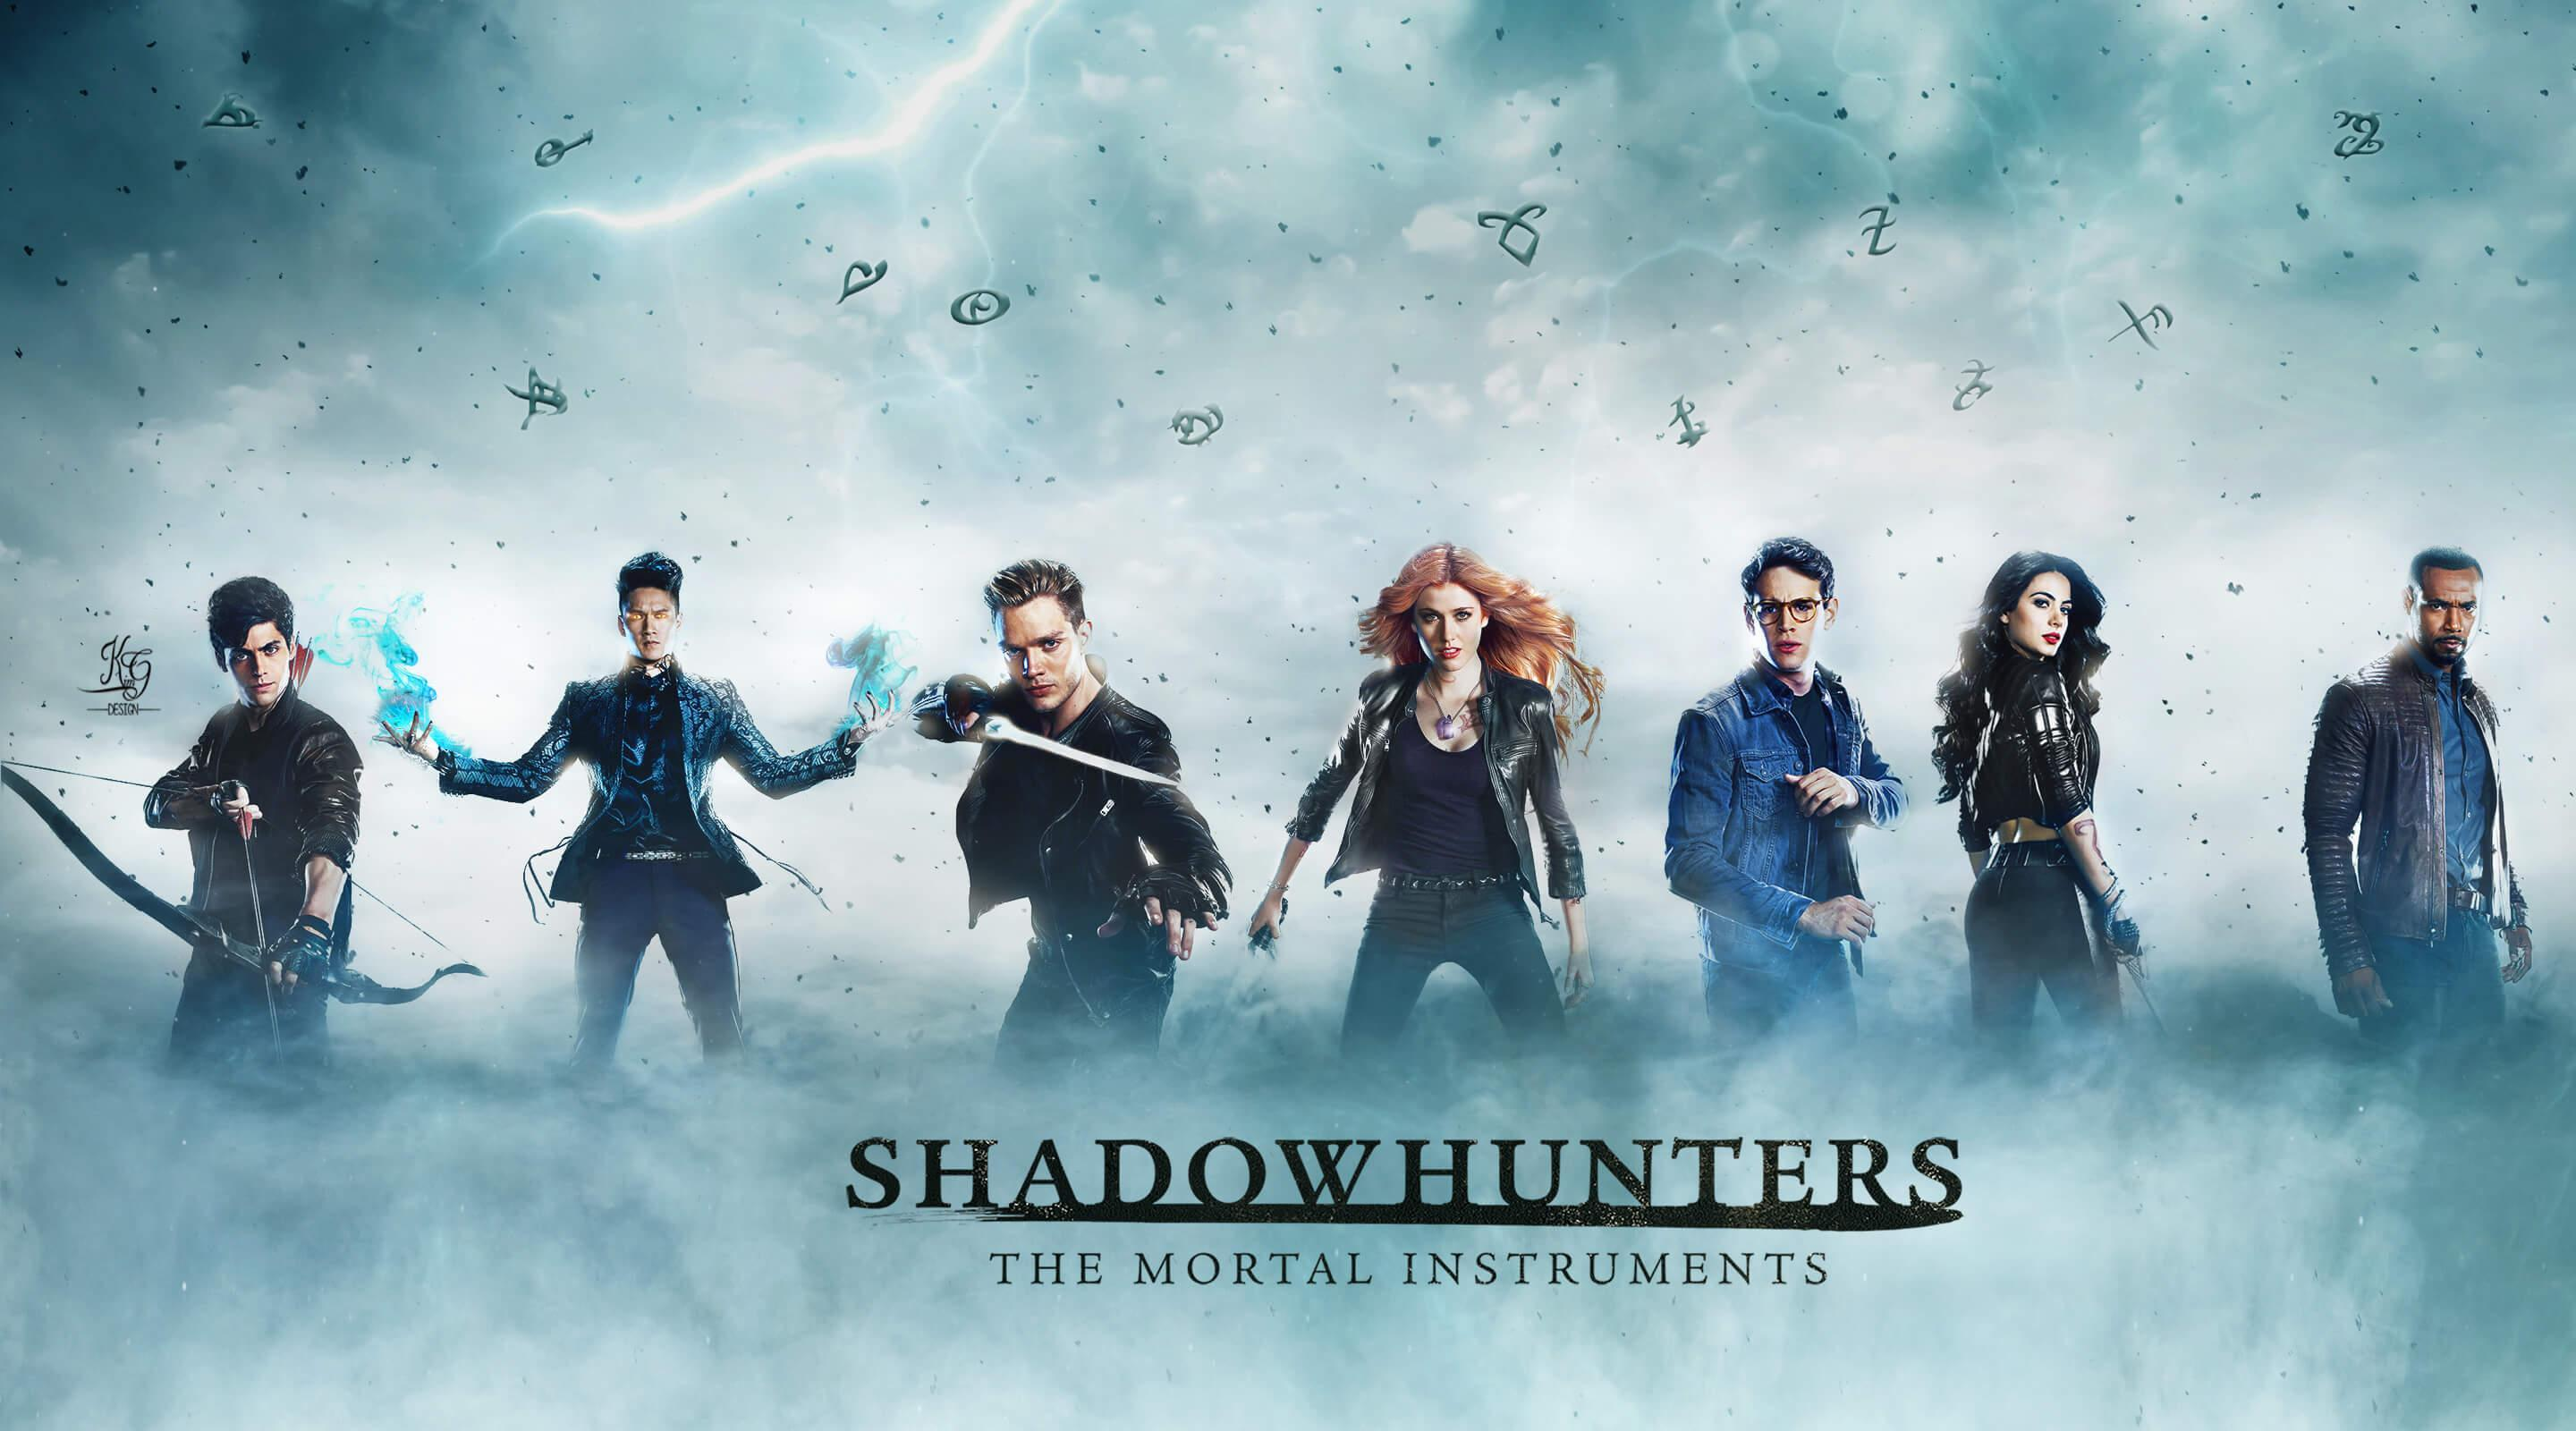 Shadowhunters-HD-Wallpaper.jpg